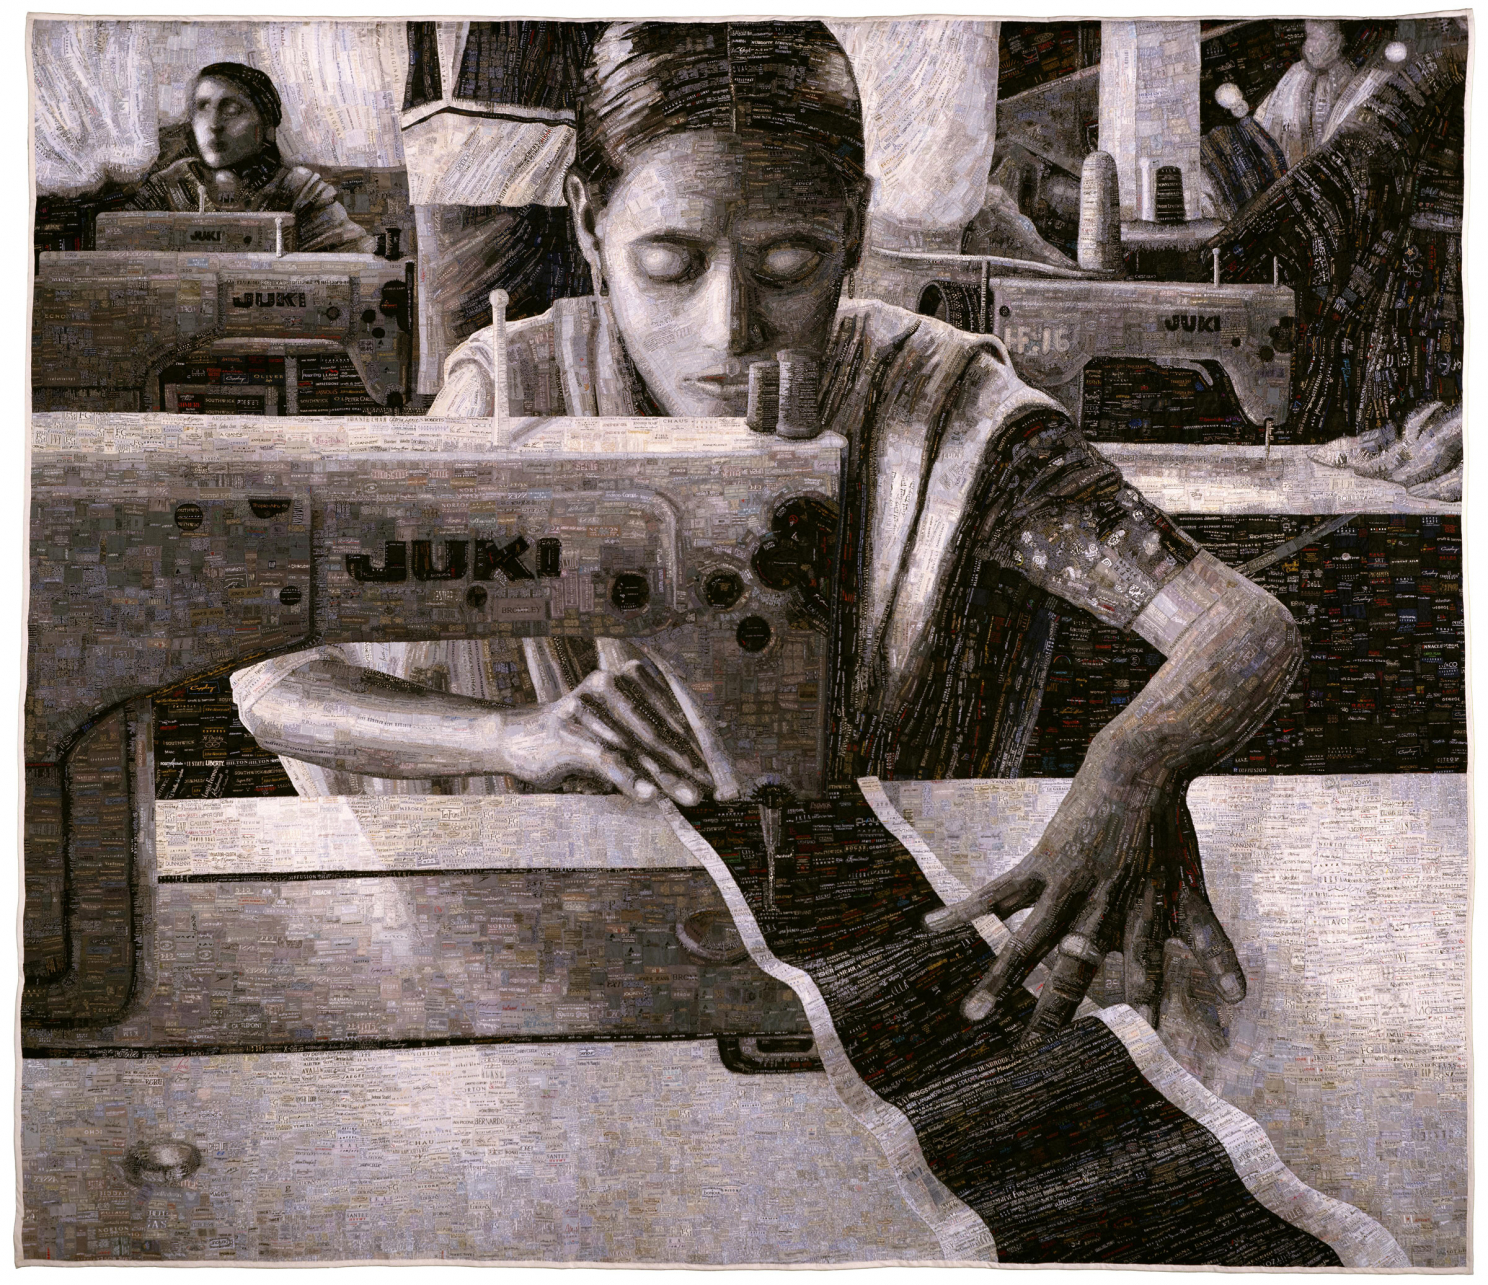 <i>Portrait of a Textile Worker</i>, Terese Agnew, 2005: Narrated by Sarah Jonker-Burke